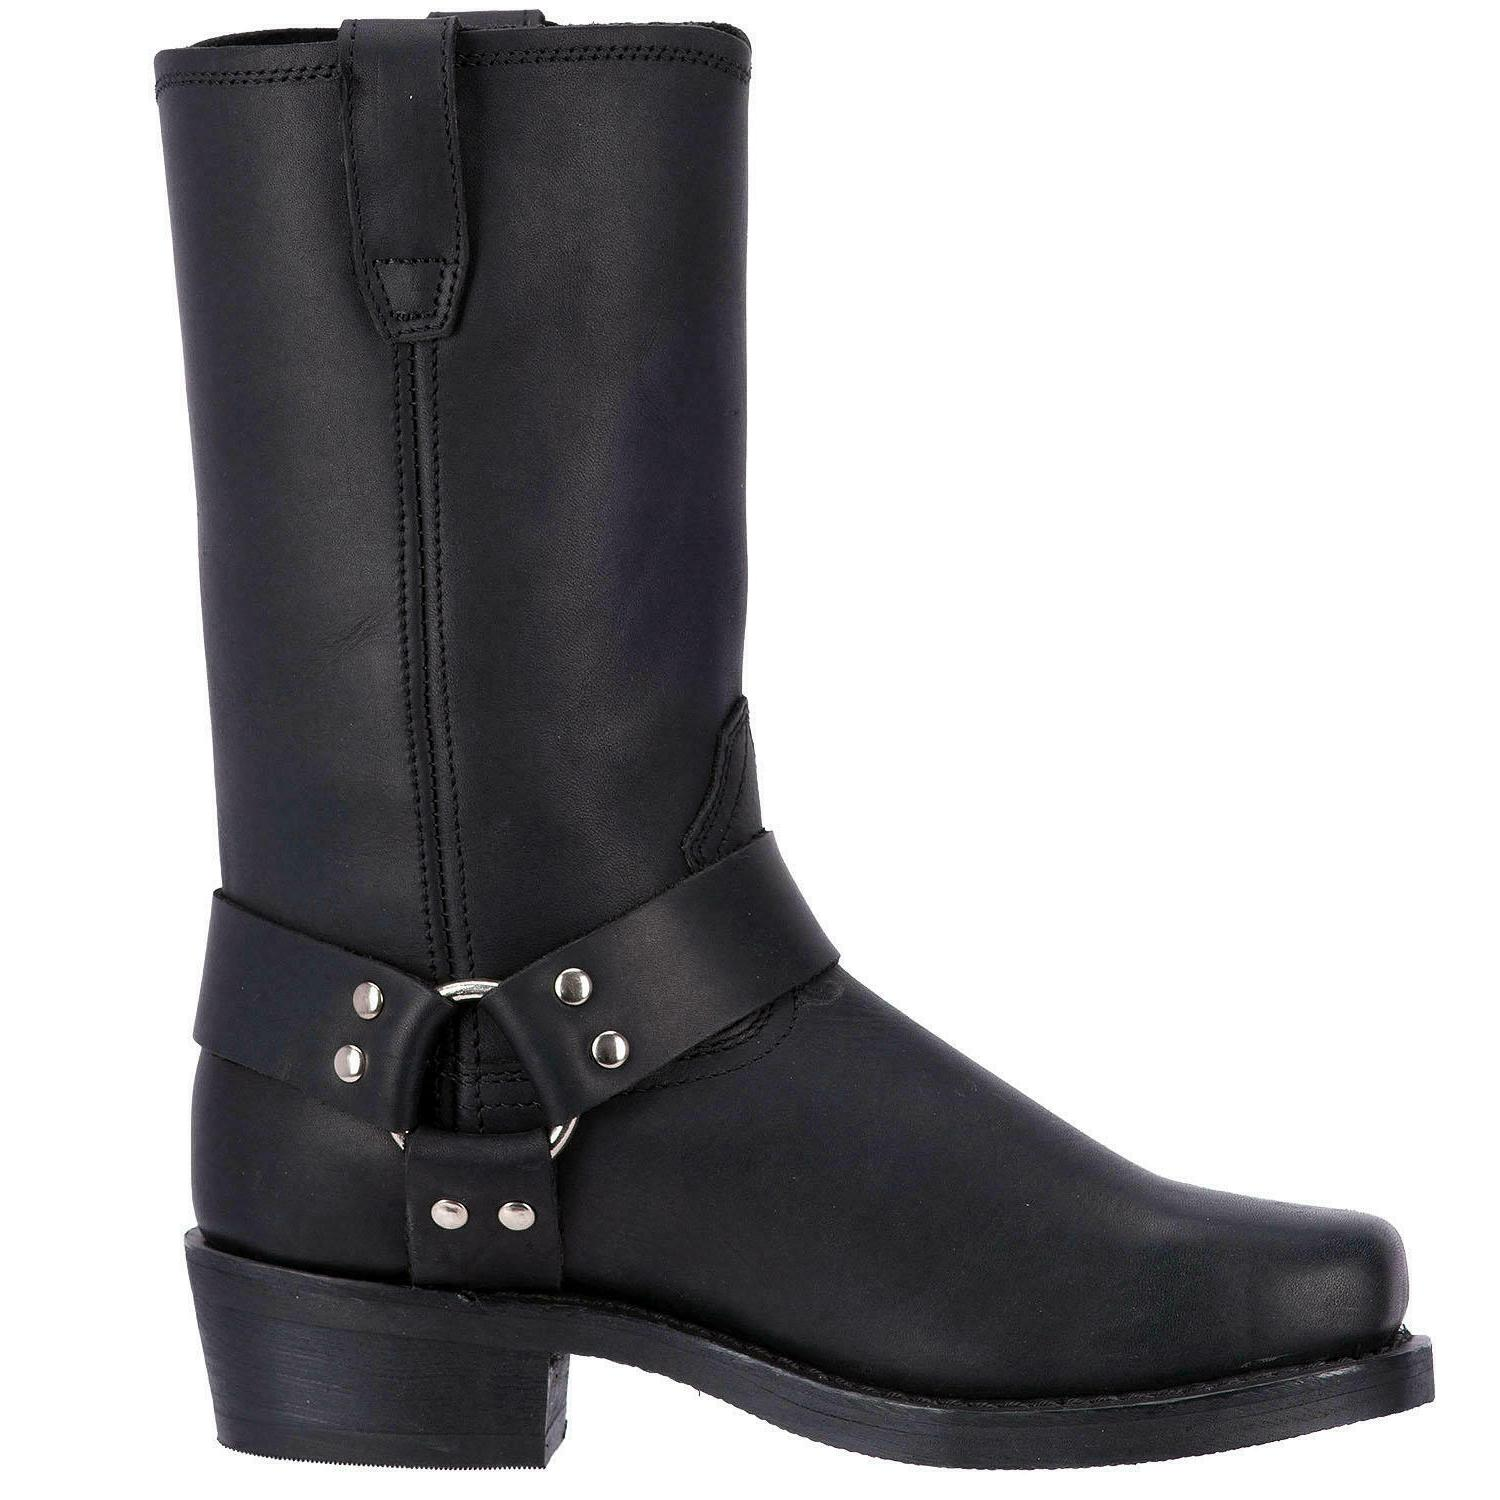 Dingo Black Leather Boots